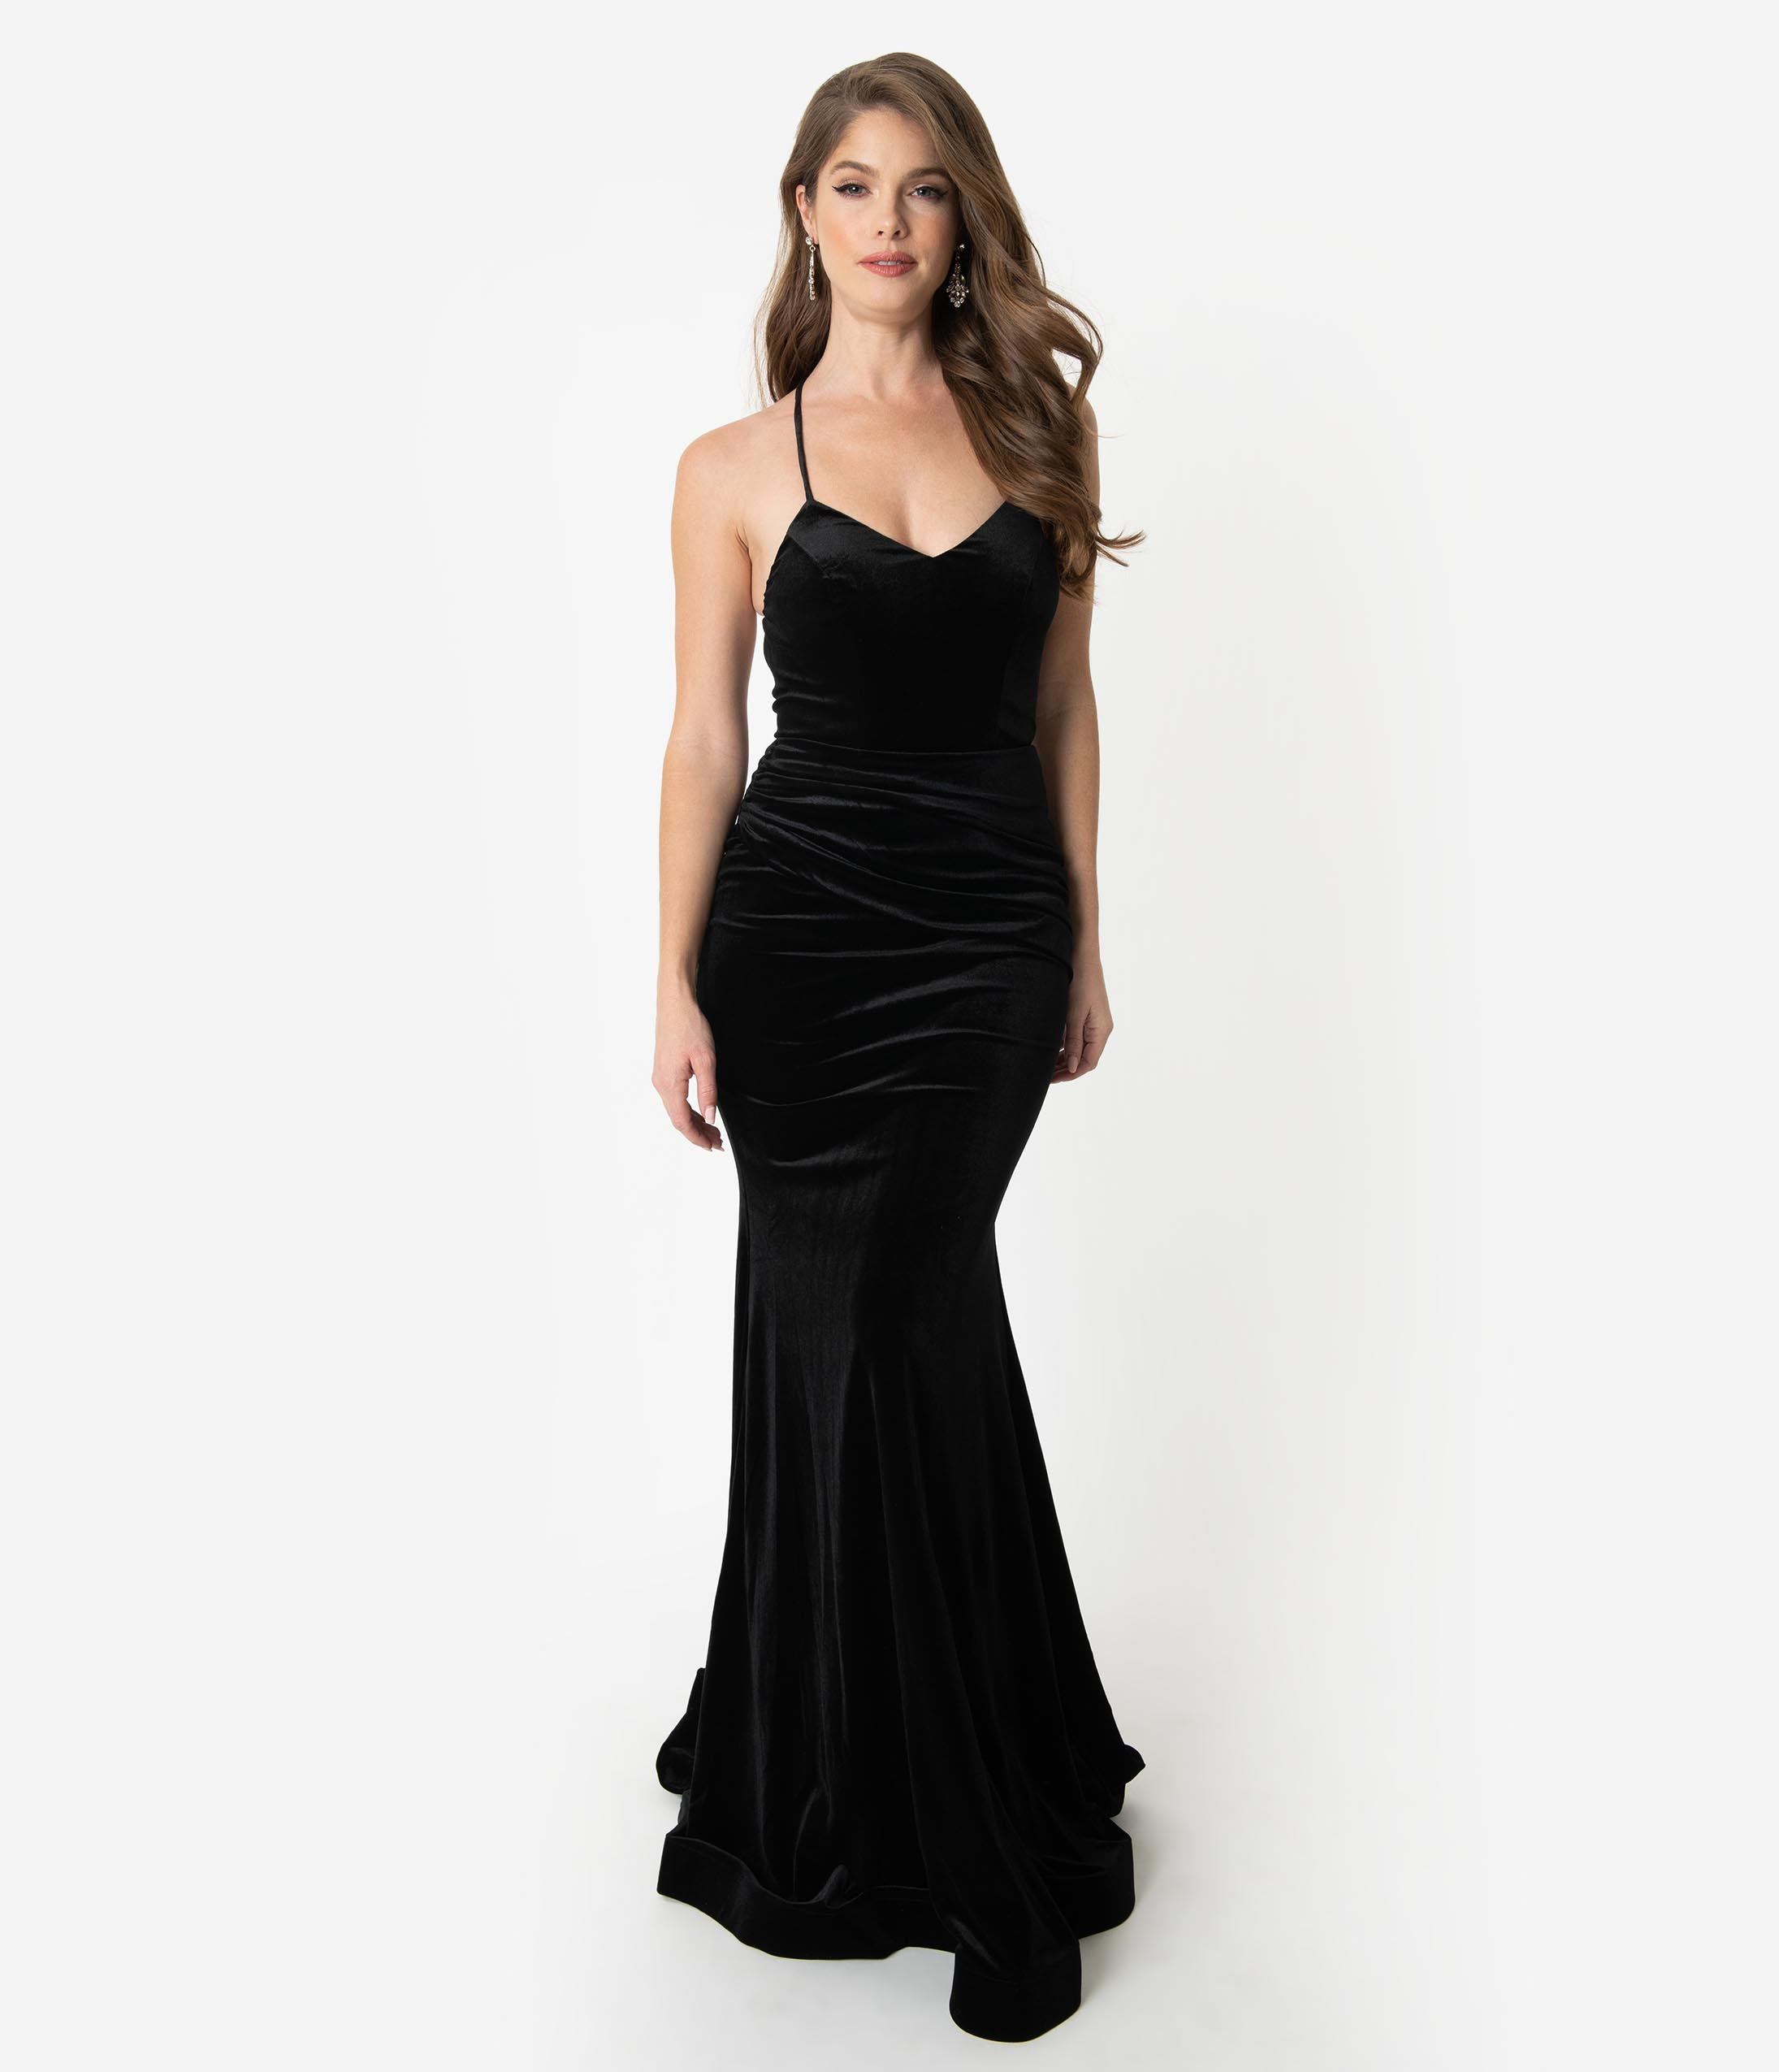 Vintage Evening Dresses and Formal Evening Gowns Black Velvet Sexy Fitted Long Dress $130.00 AT vintagedancer.com